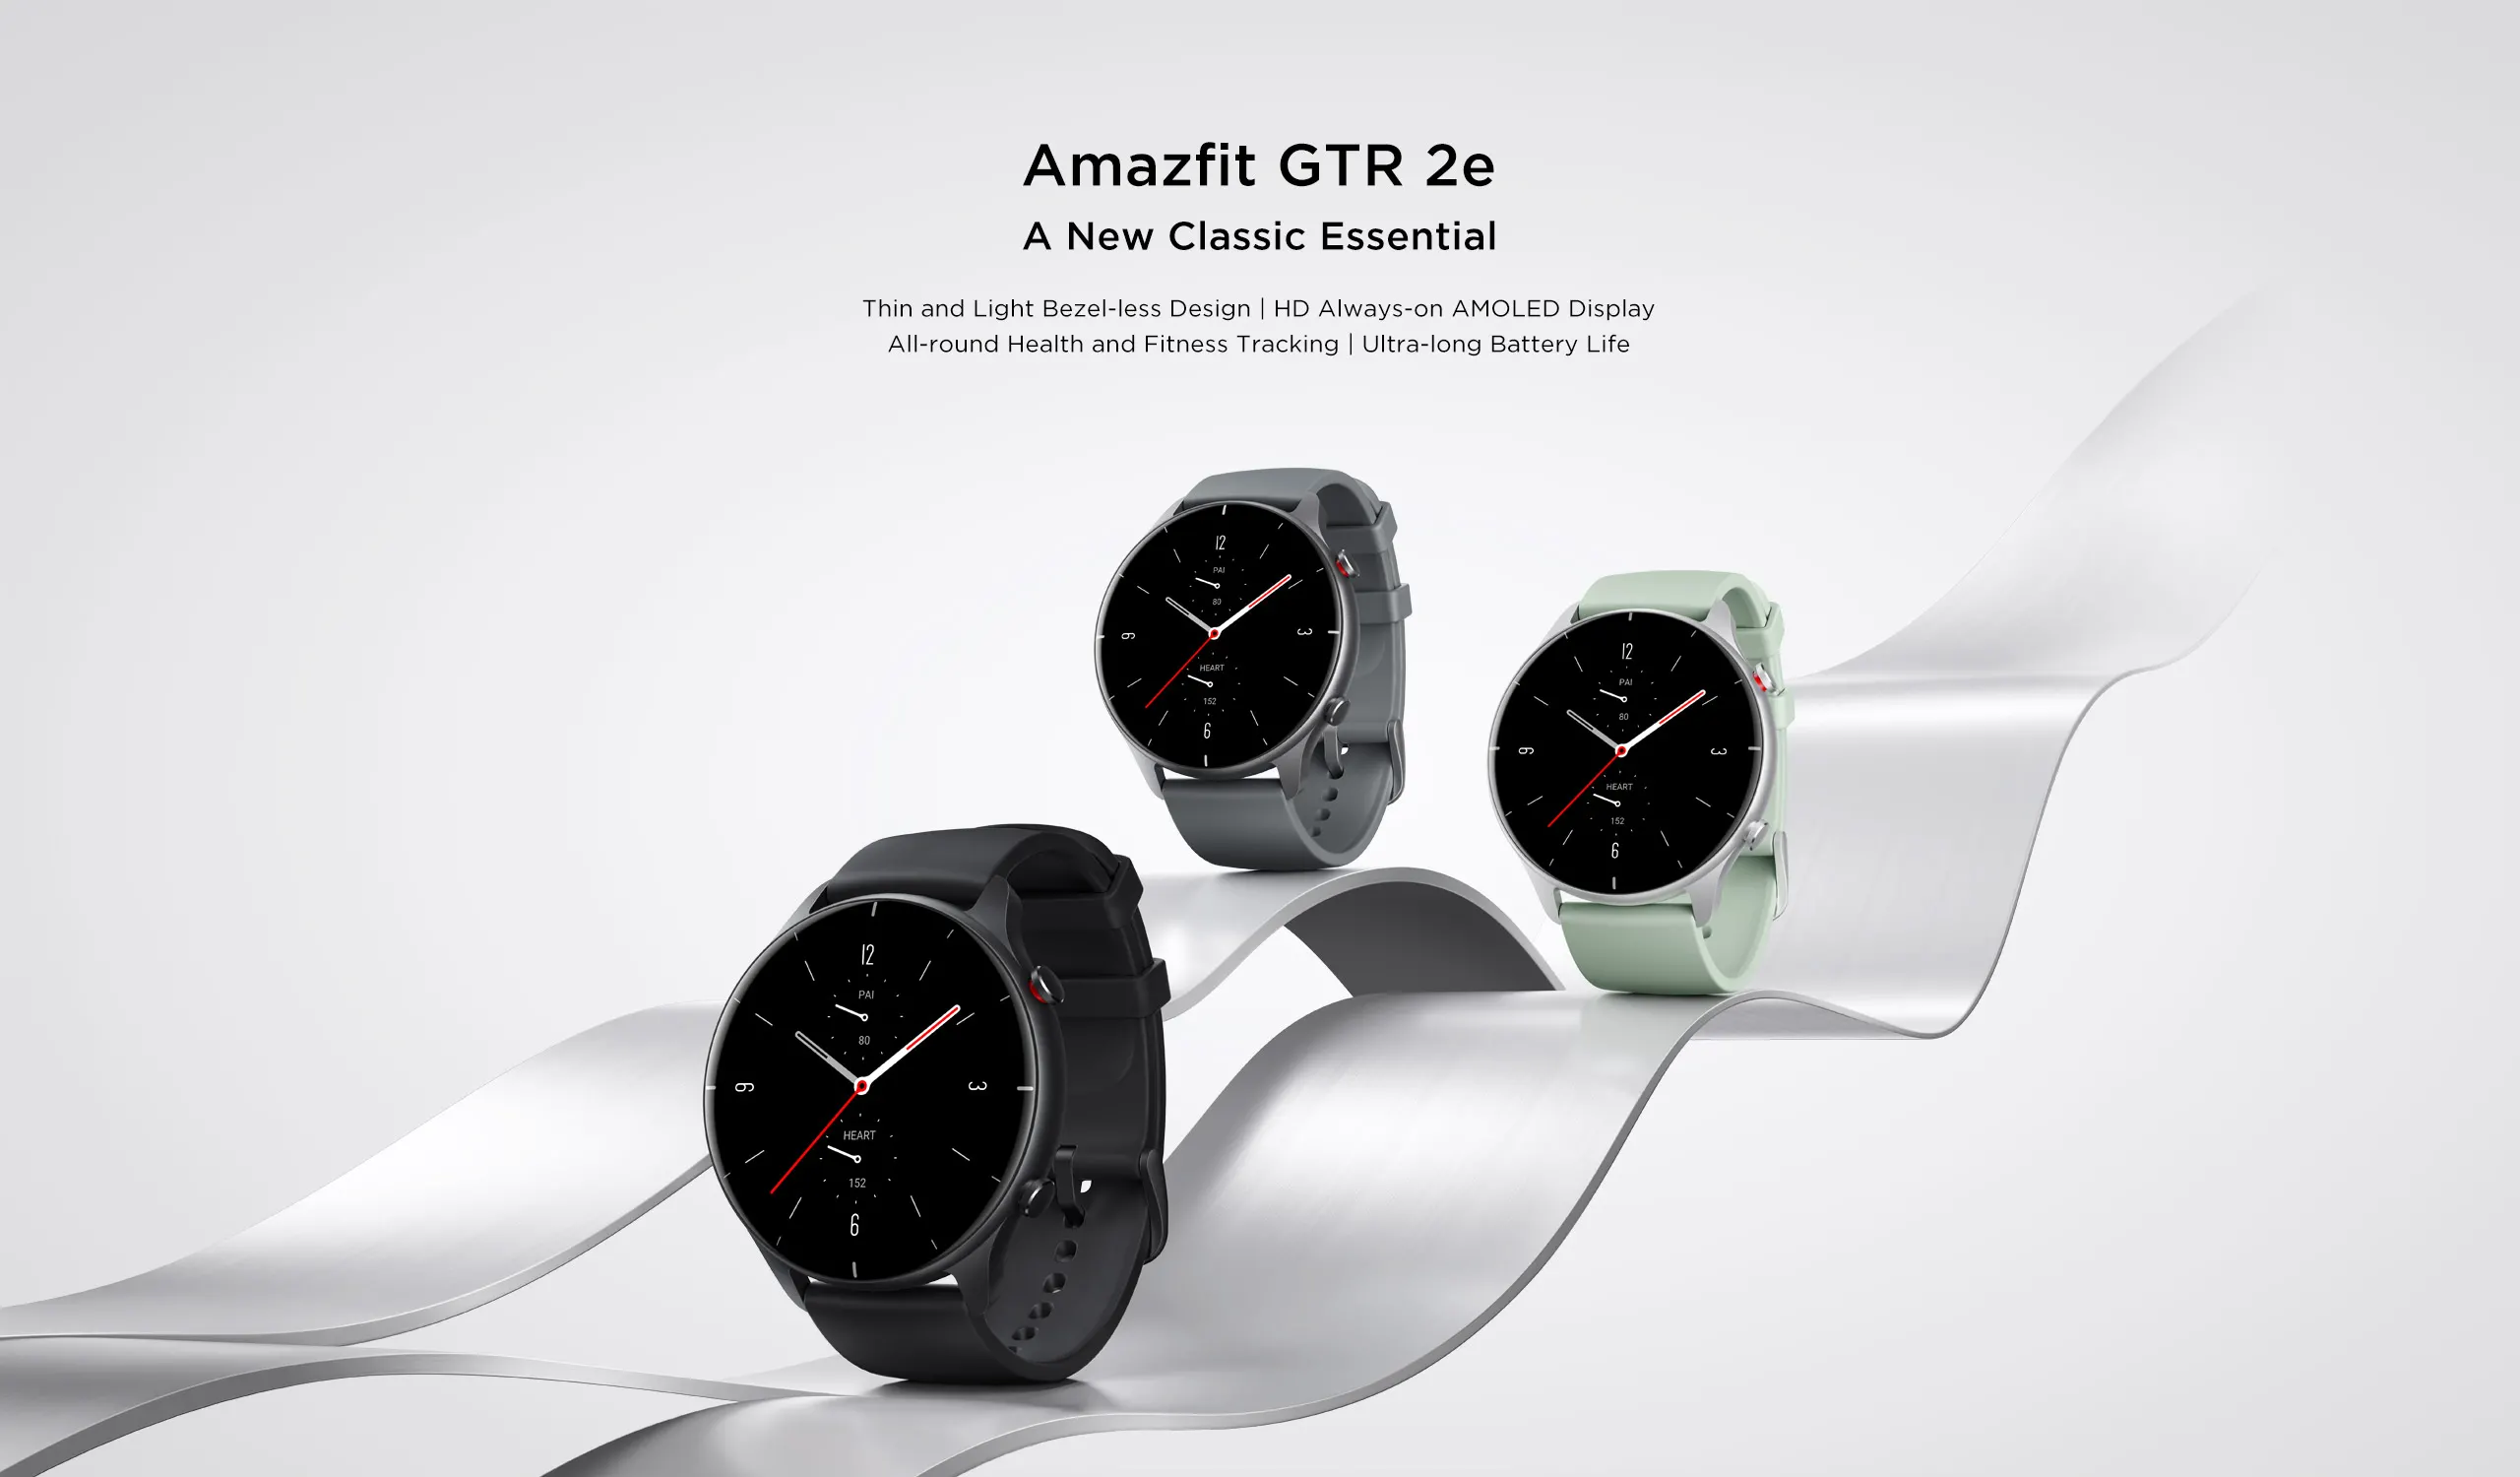 Amazfit GTR 2e Smartwatch with 24H Heart Rate, Sleep, Stress and SpO2 Monitor, Activity Tracker with 90 Sports Modes, 24 Day Battery Life, Black Price in Pakistan